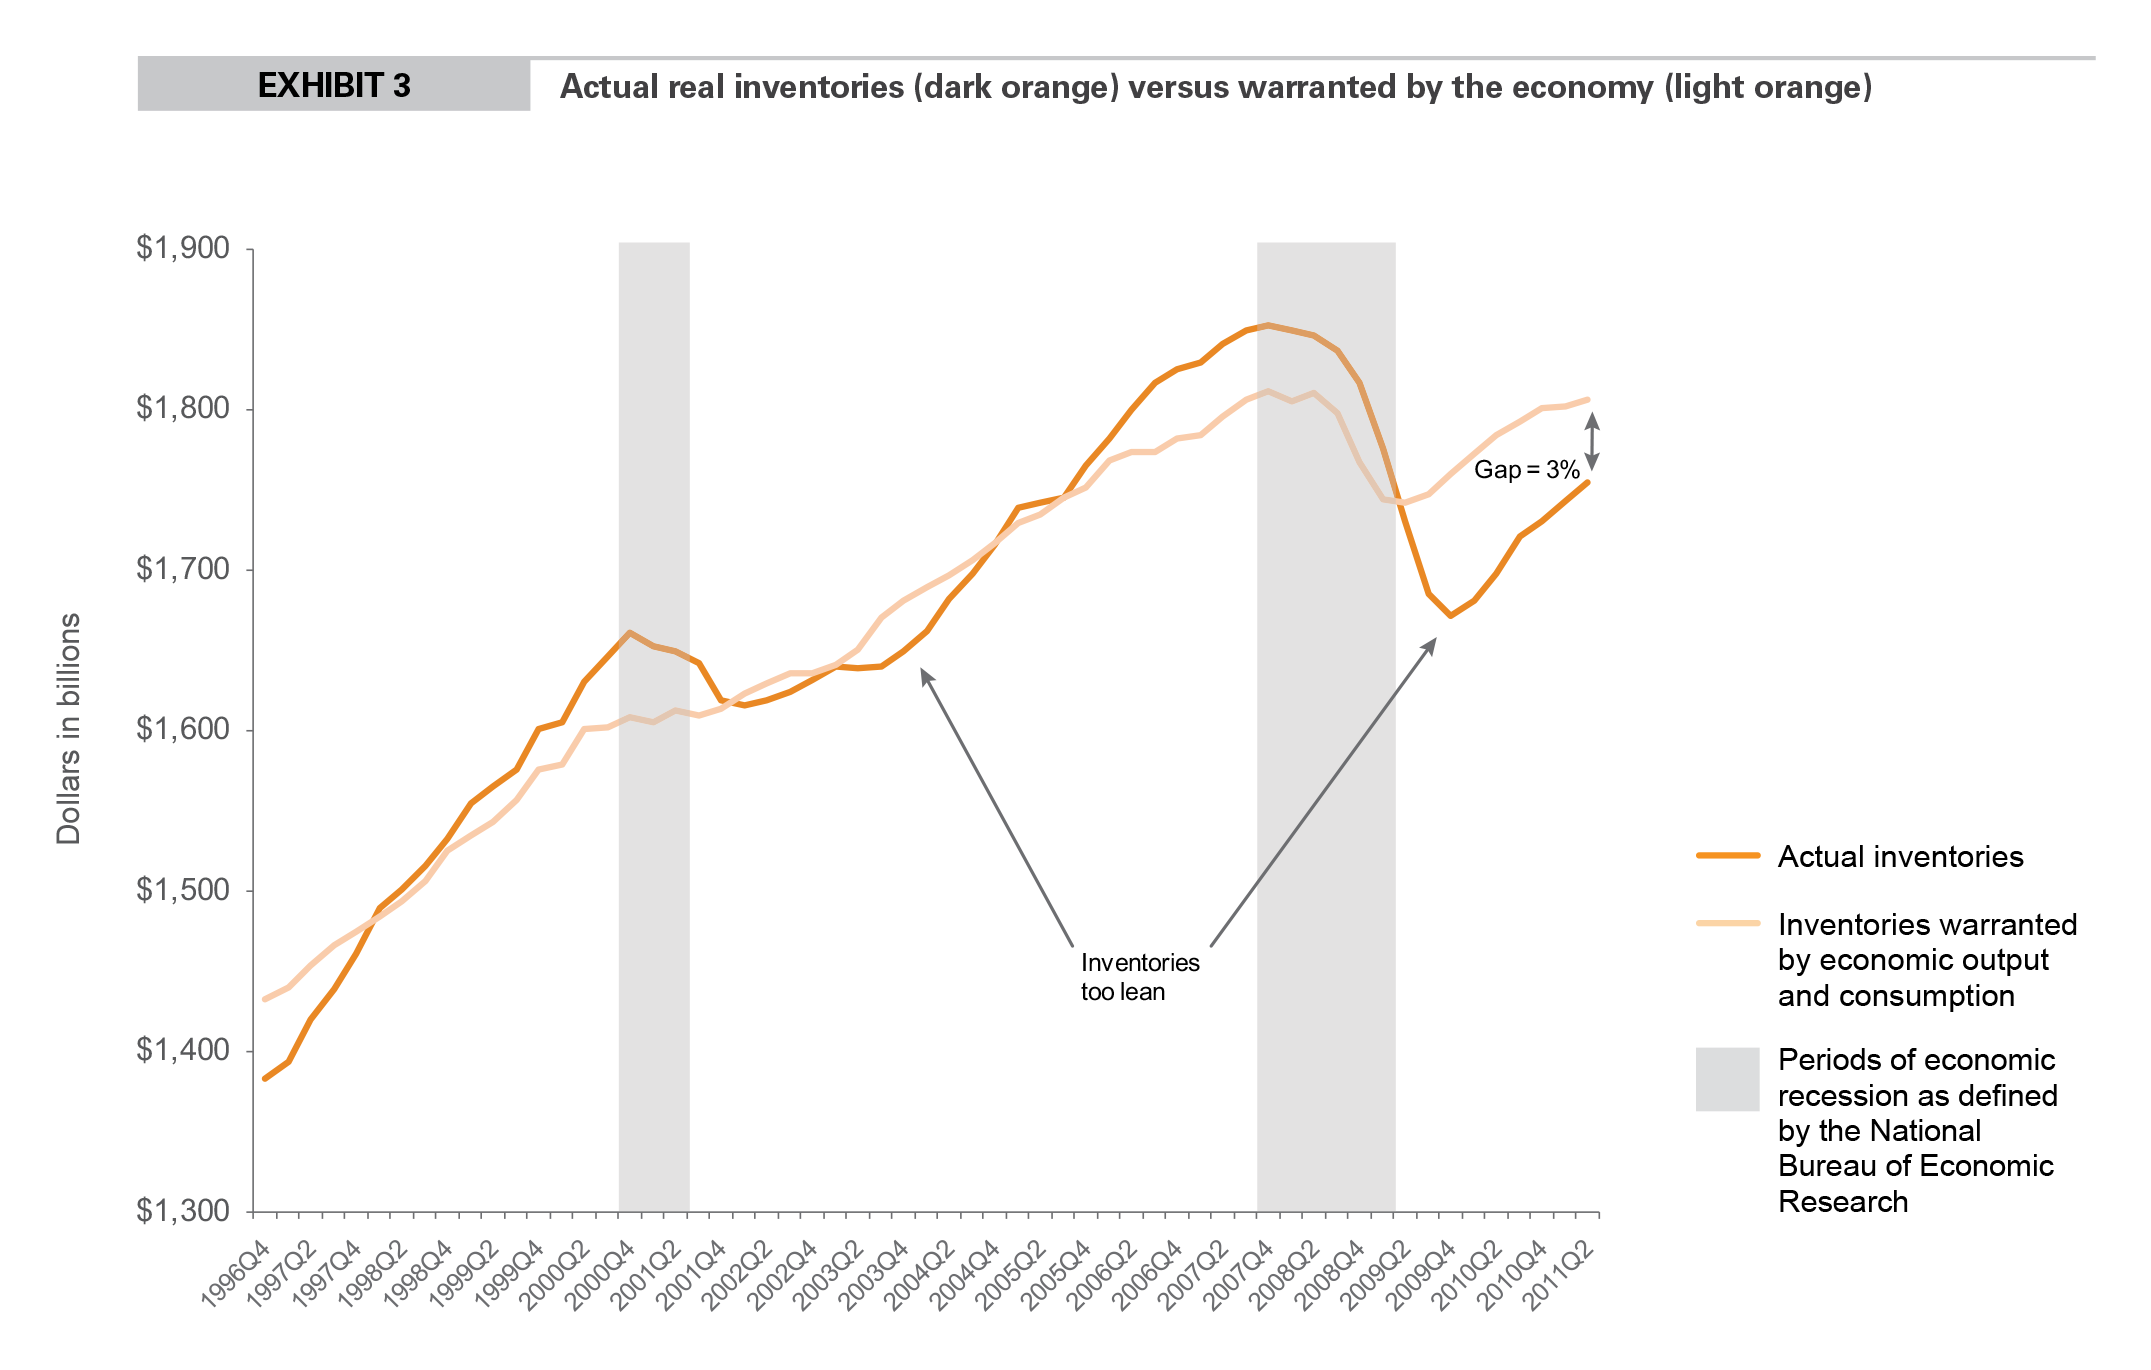 EXHIBIT 3 Actual real inventories (dark orange) versus warranted by the economy (light orange)